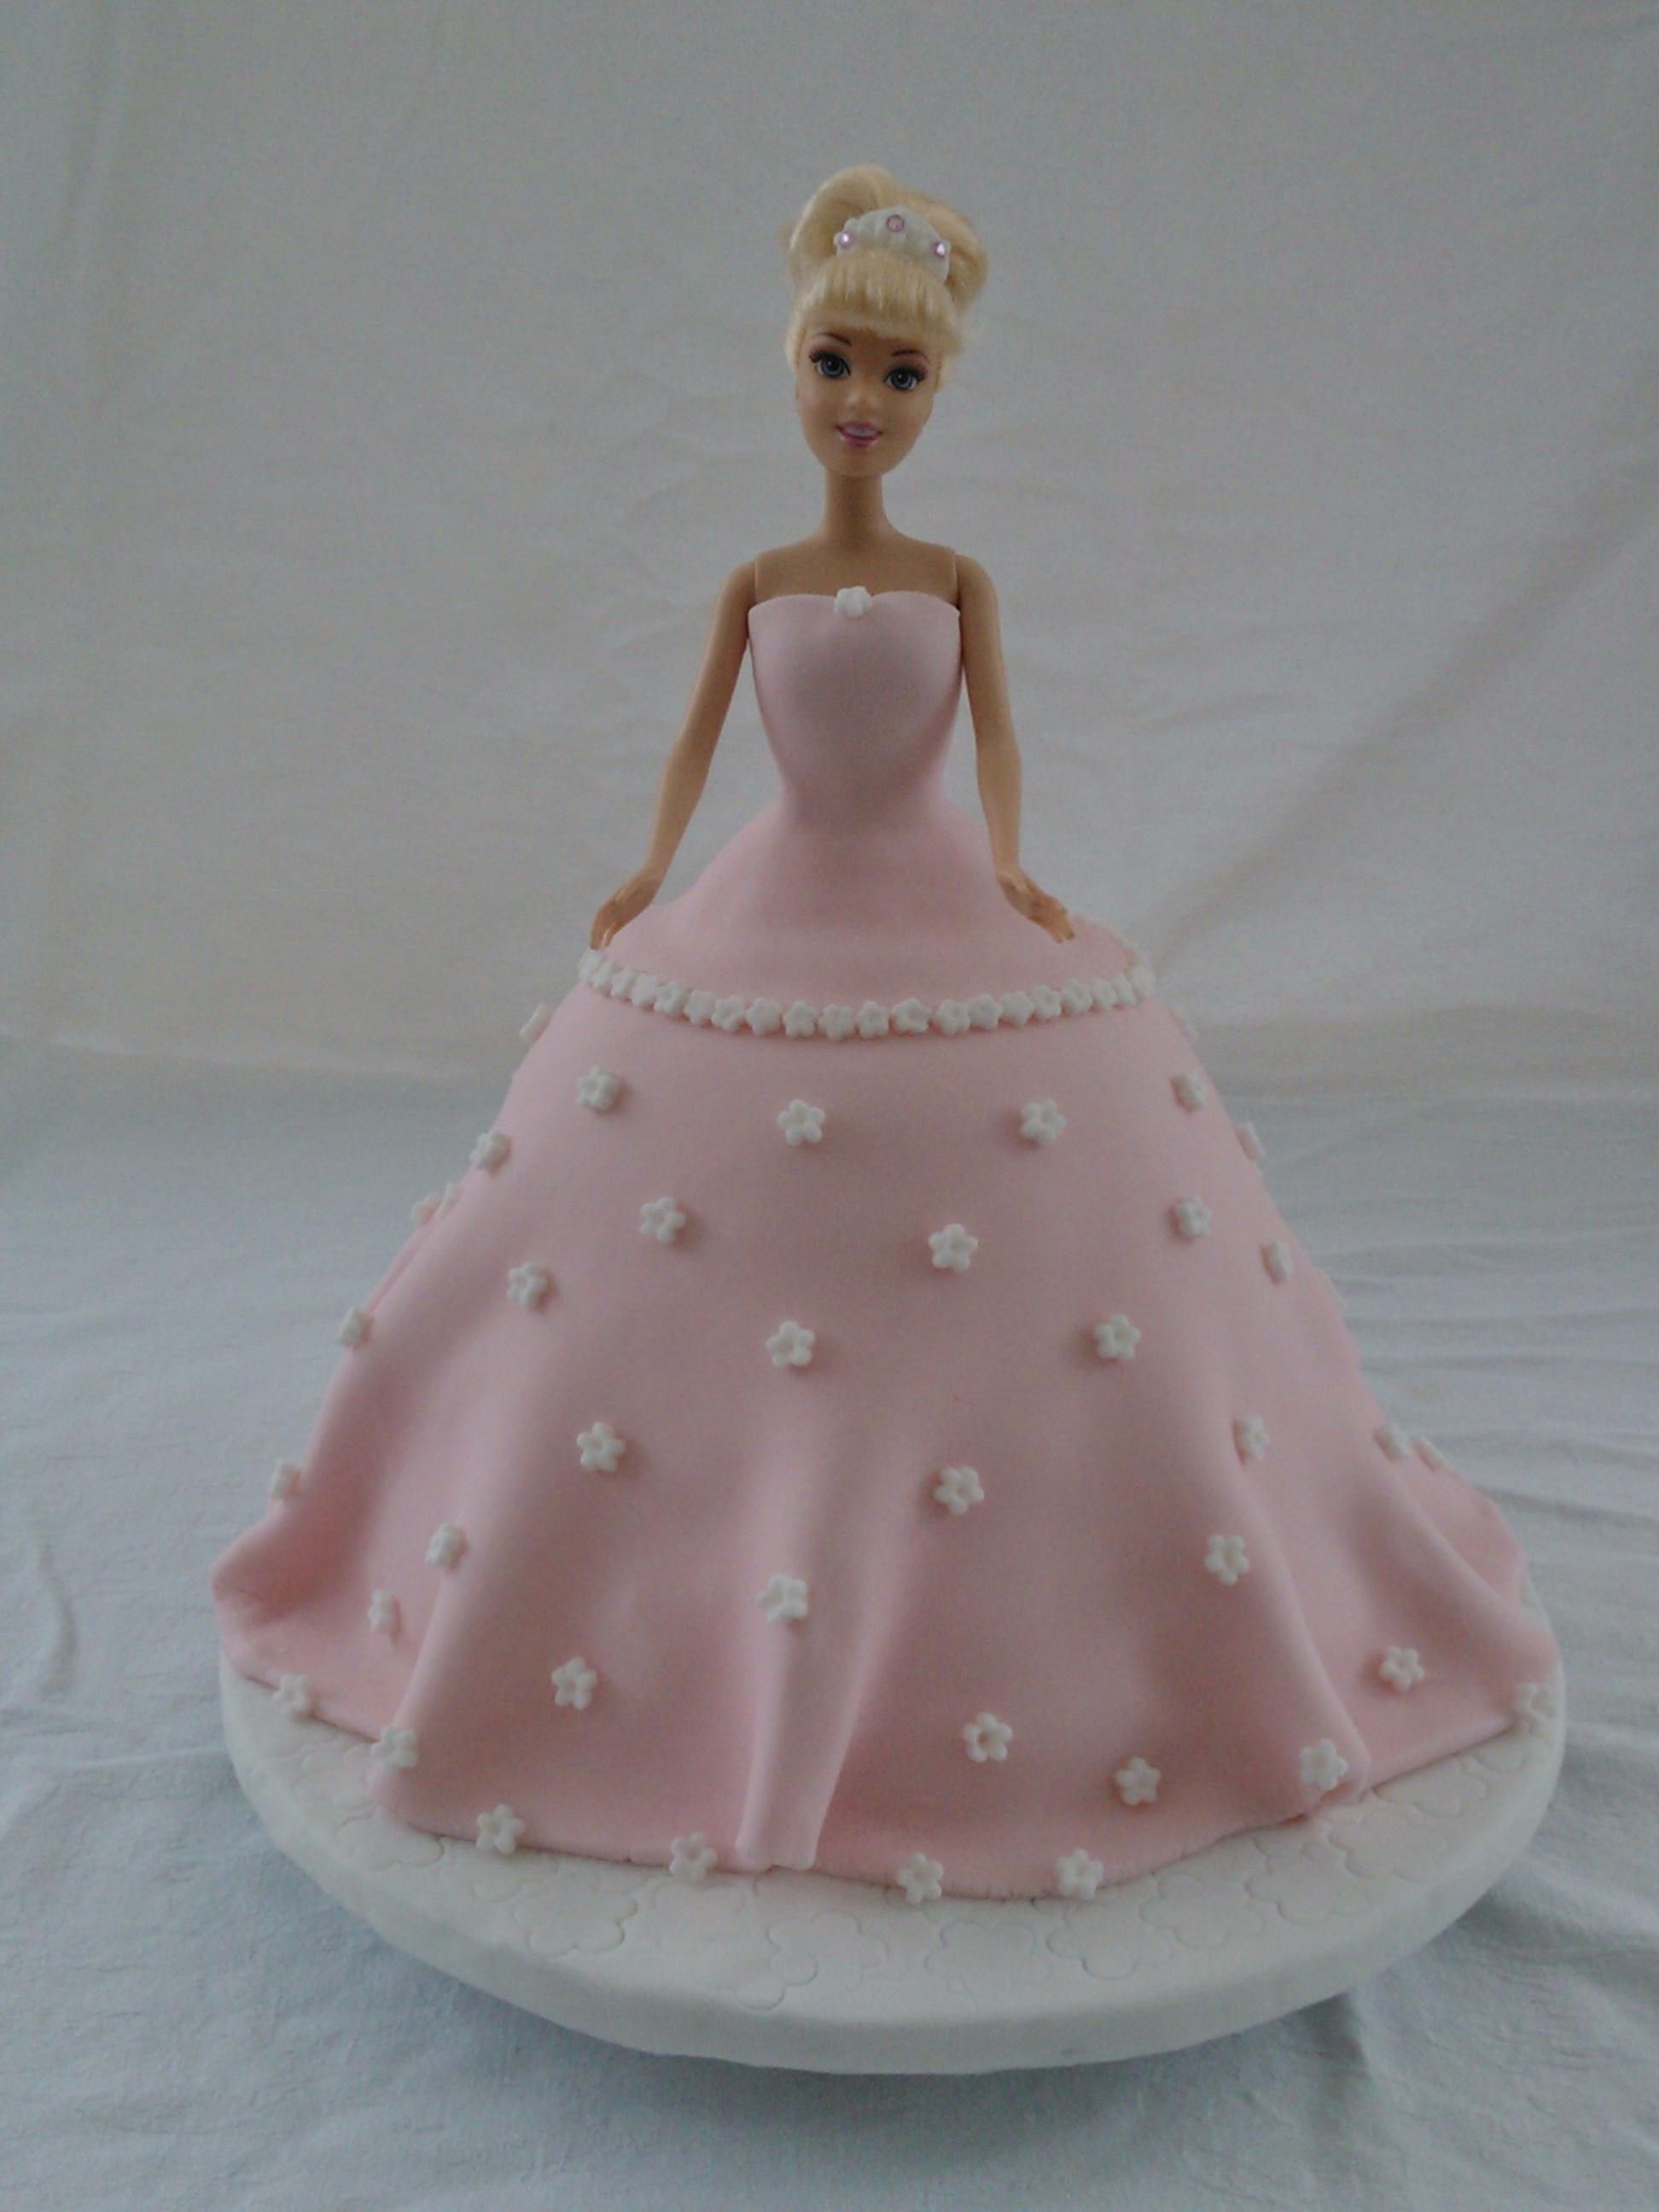 Barbie Cake from Flowers and Cakes Parbold, Love it!